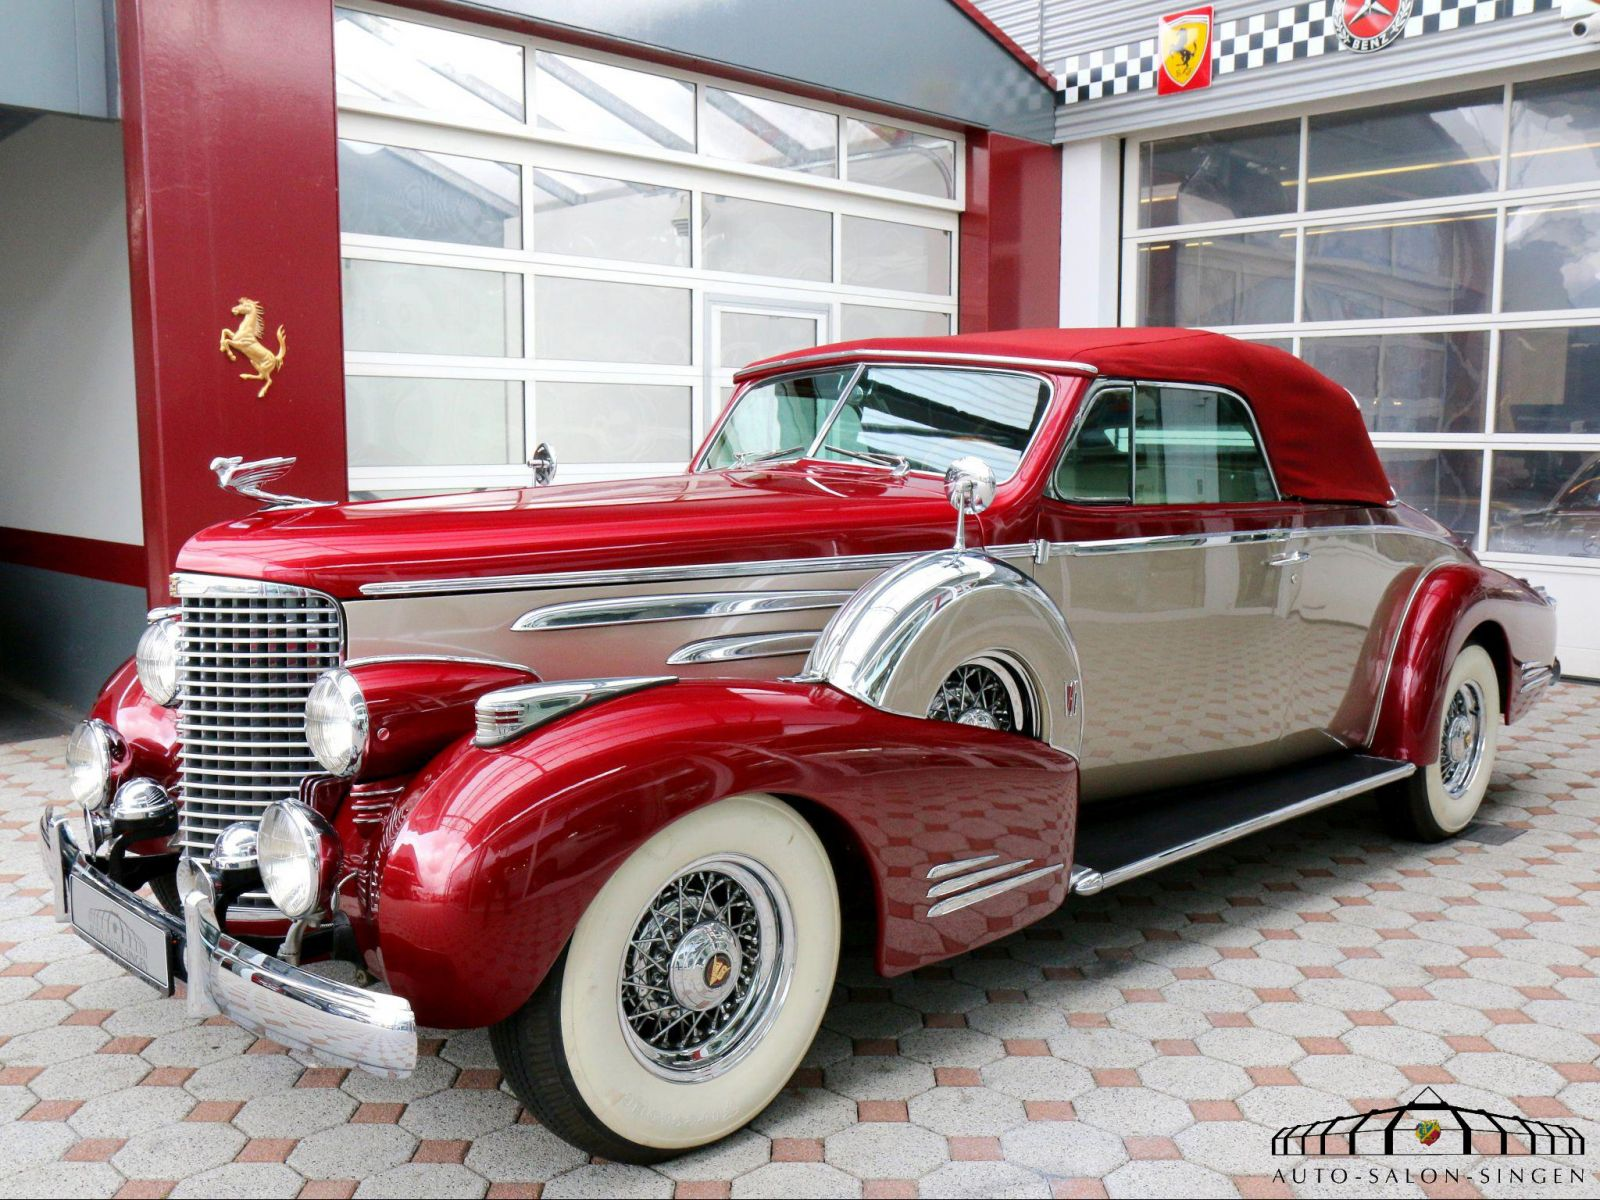 All Model Car >> Cadillac - Auto Salon Singen